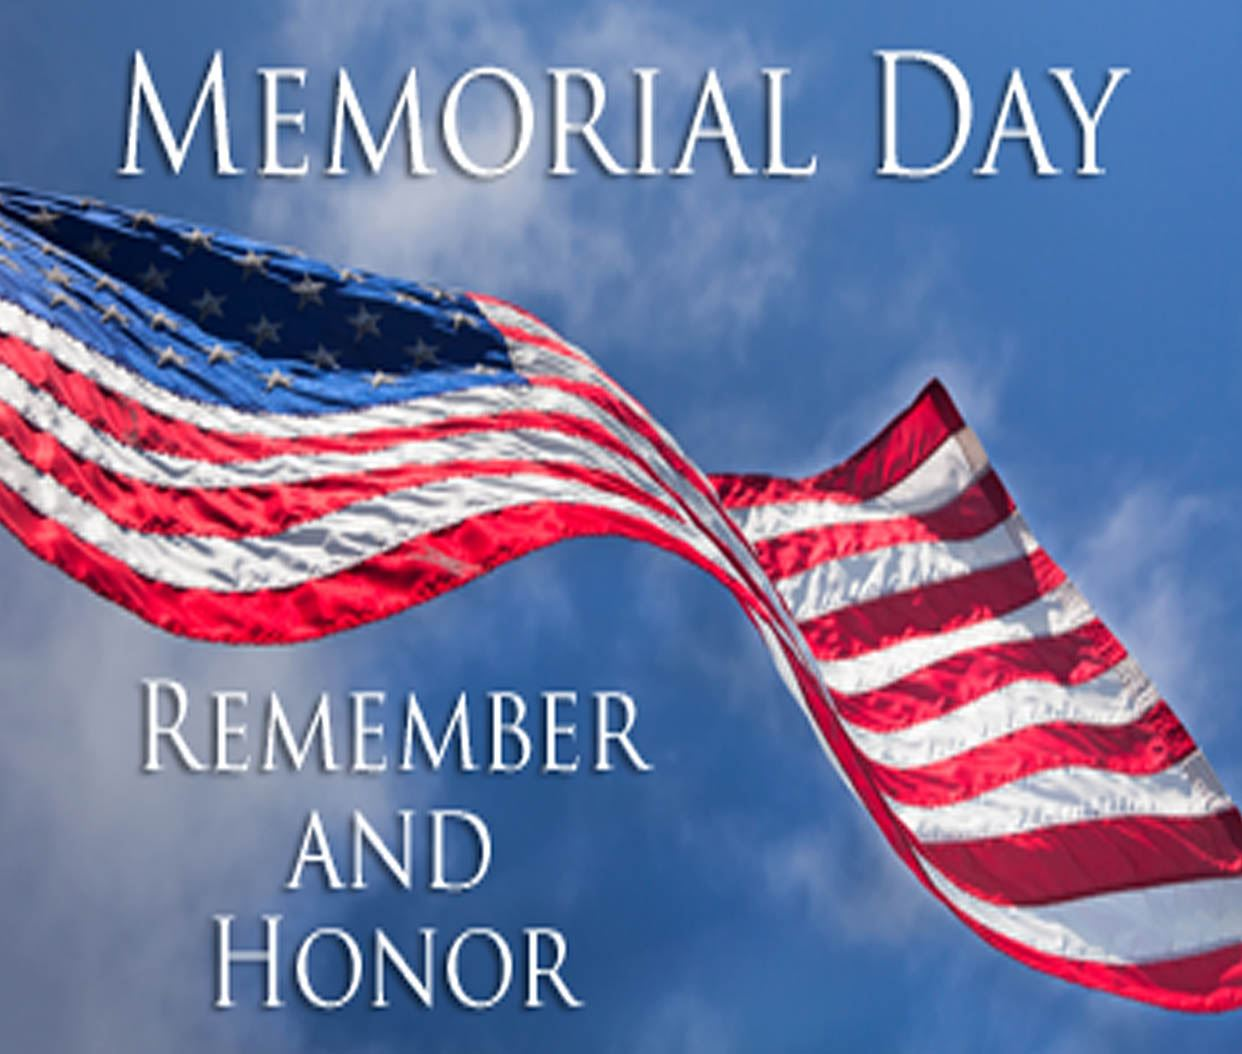 Memorial Day Announcement, American flag, words saying Remember and Honor